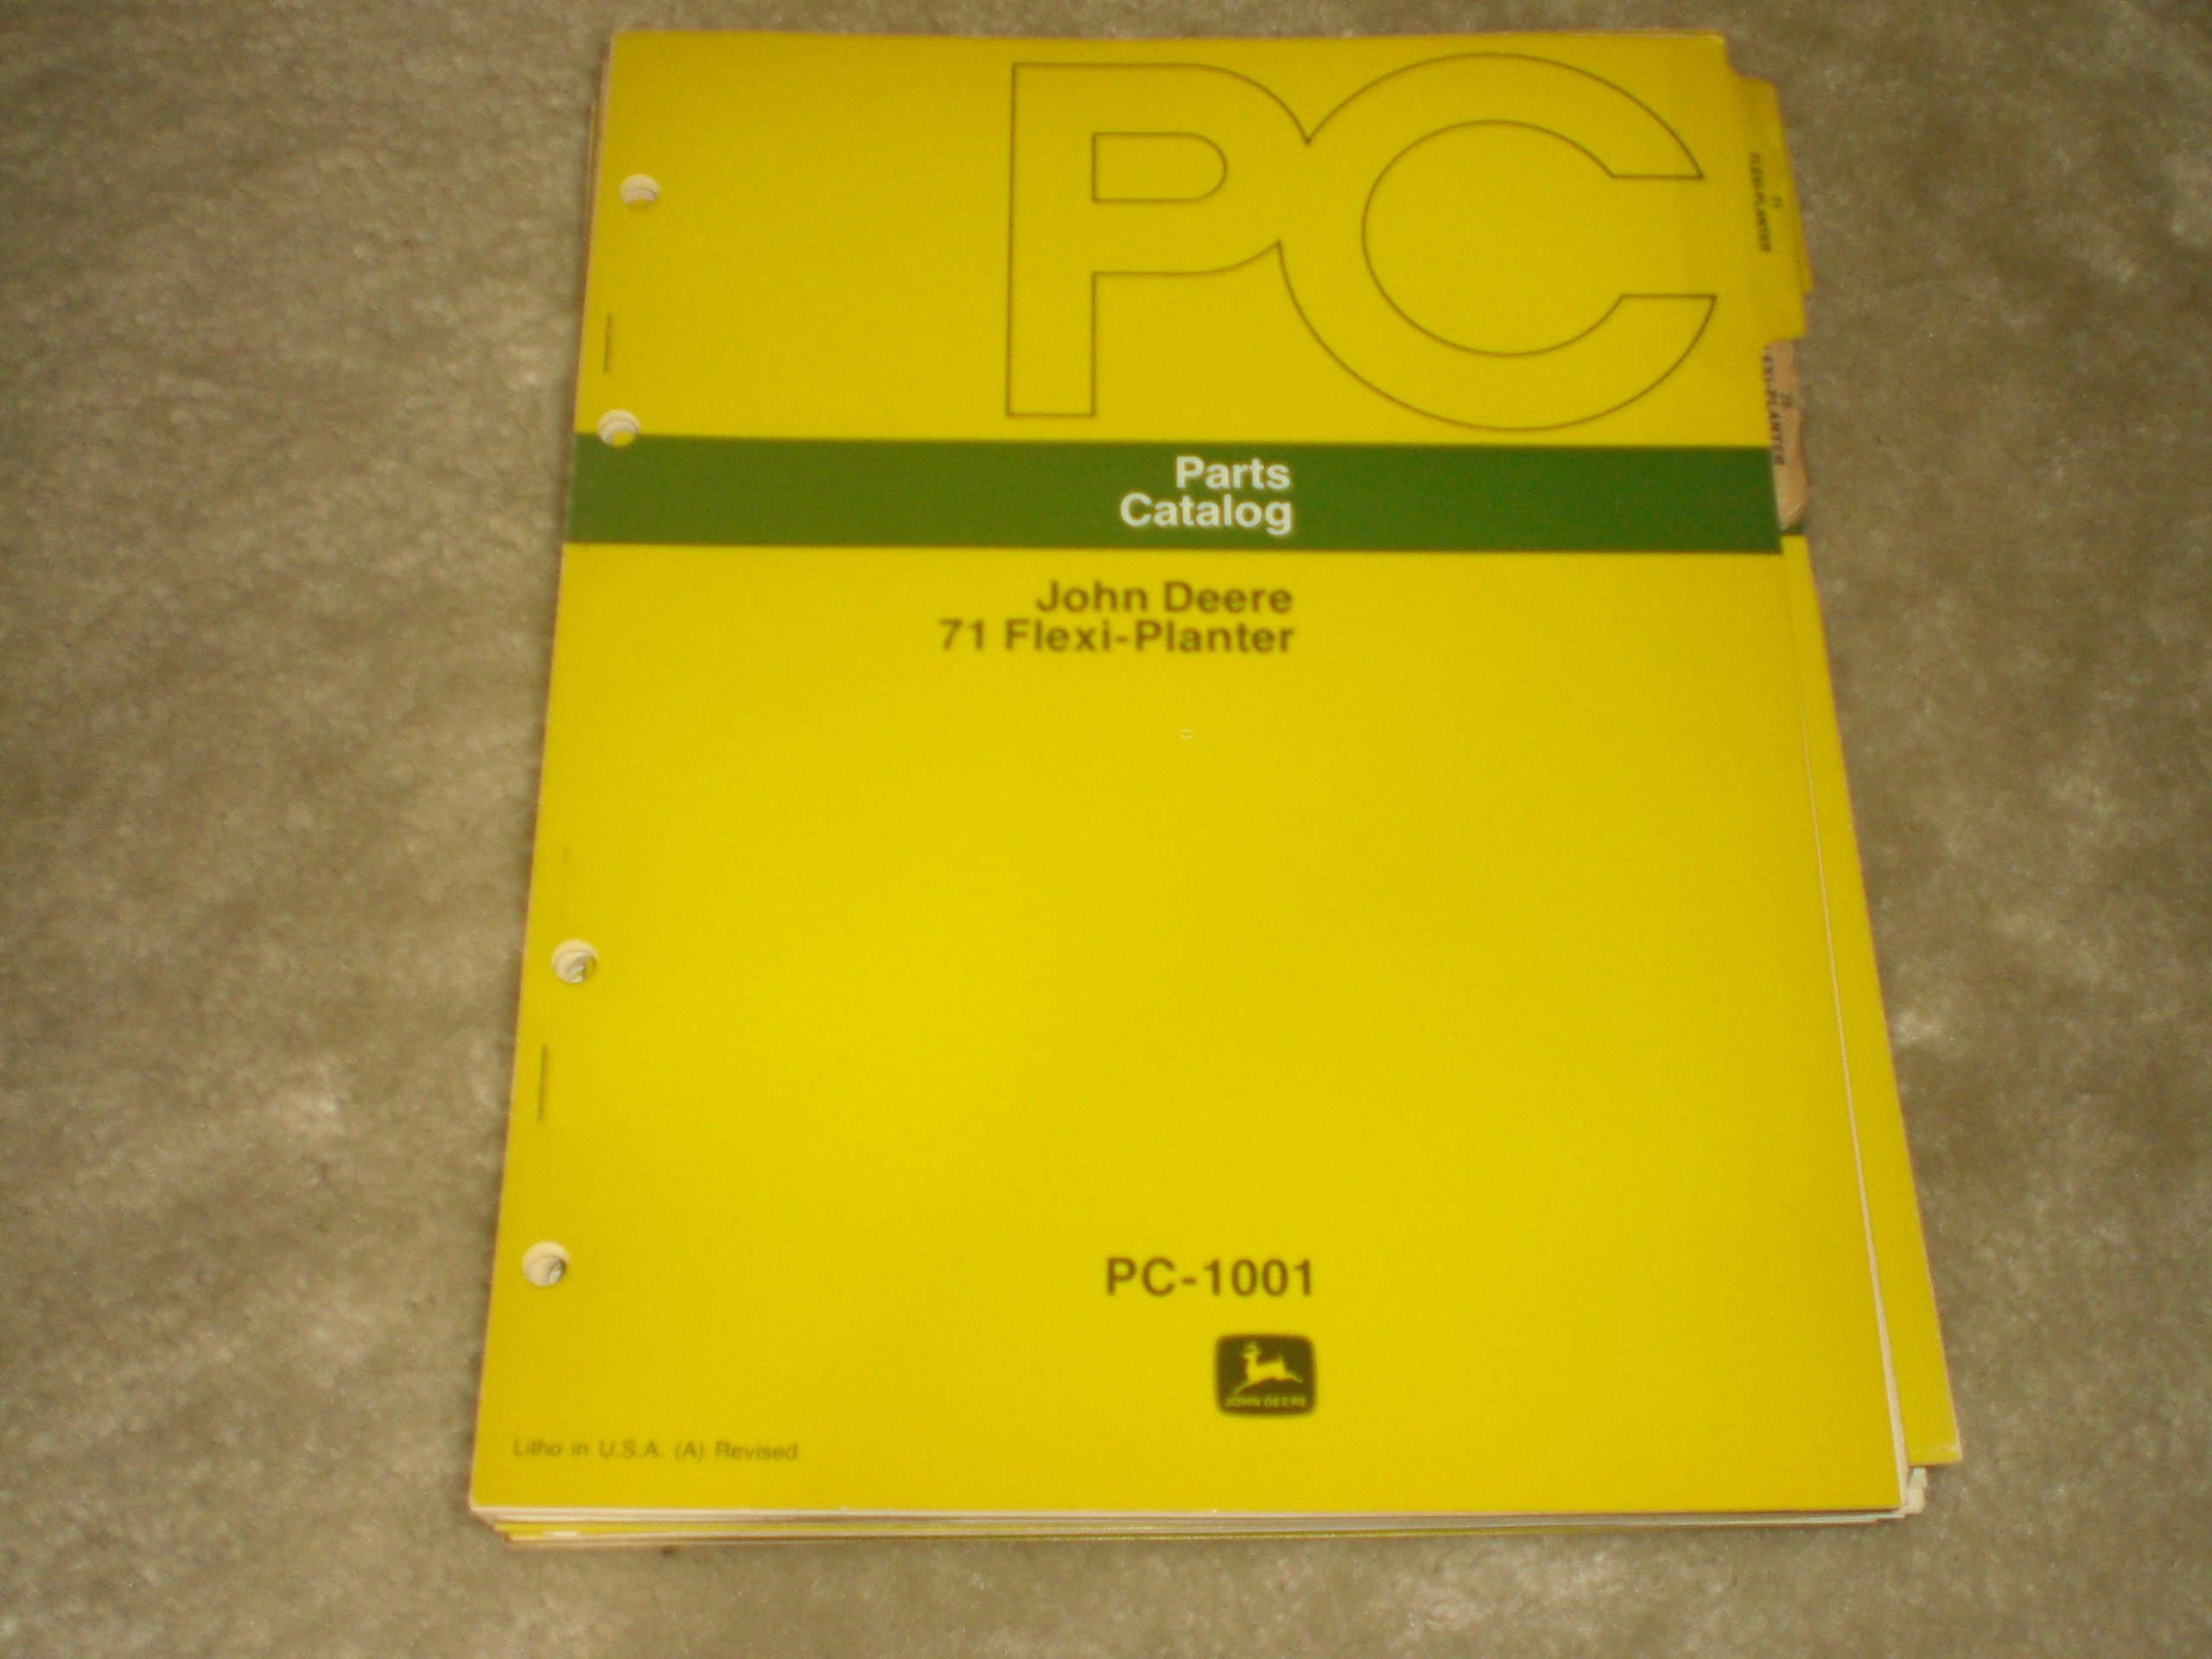 Parts Catalog John Deere 71 Flex Planter Pc 1001 John Deere